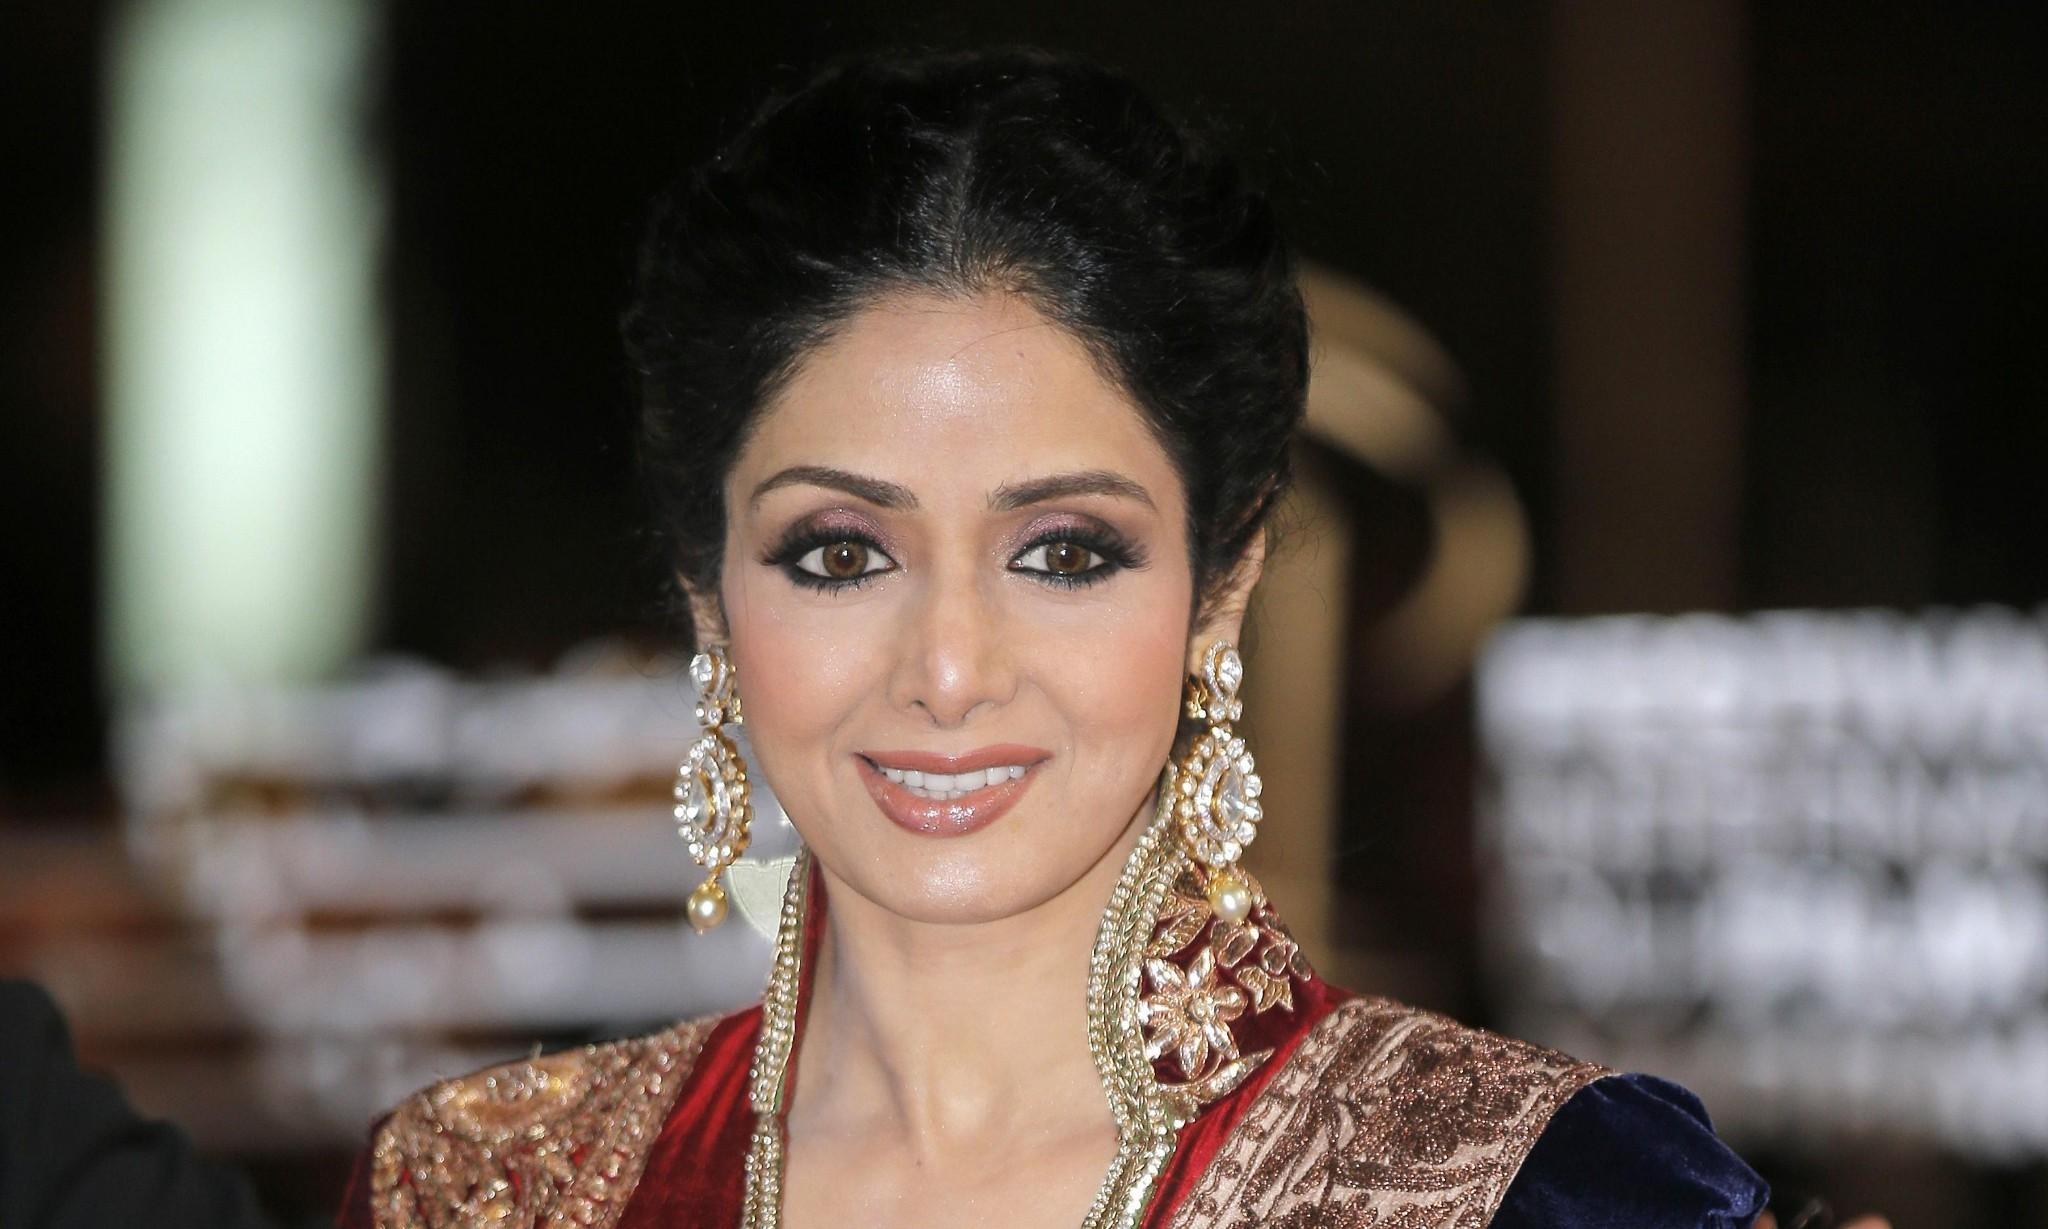 Sridevi Kapoor: Bollywood star 'drowned in bath'